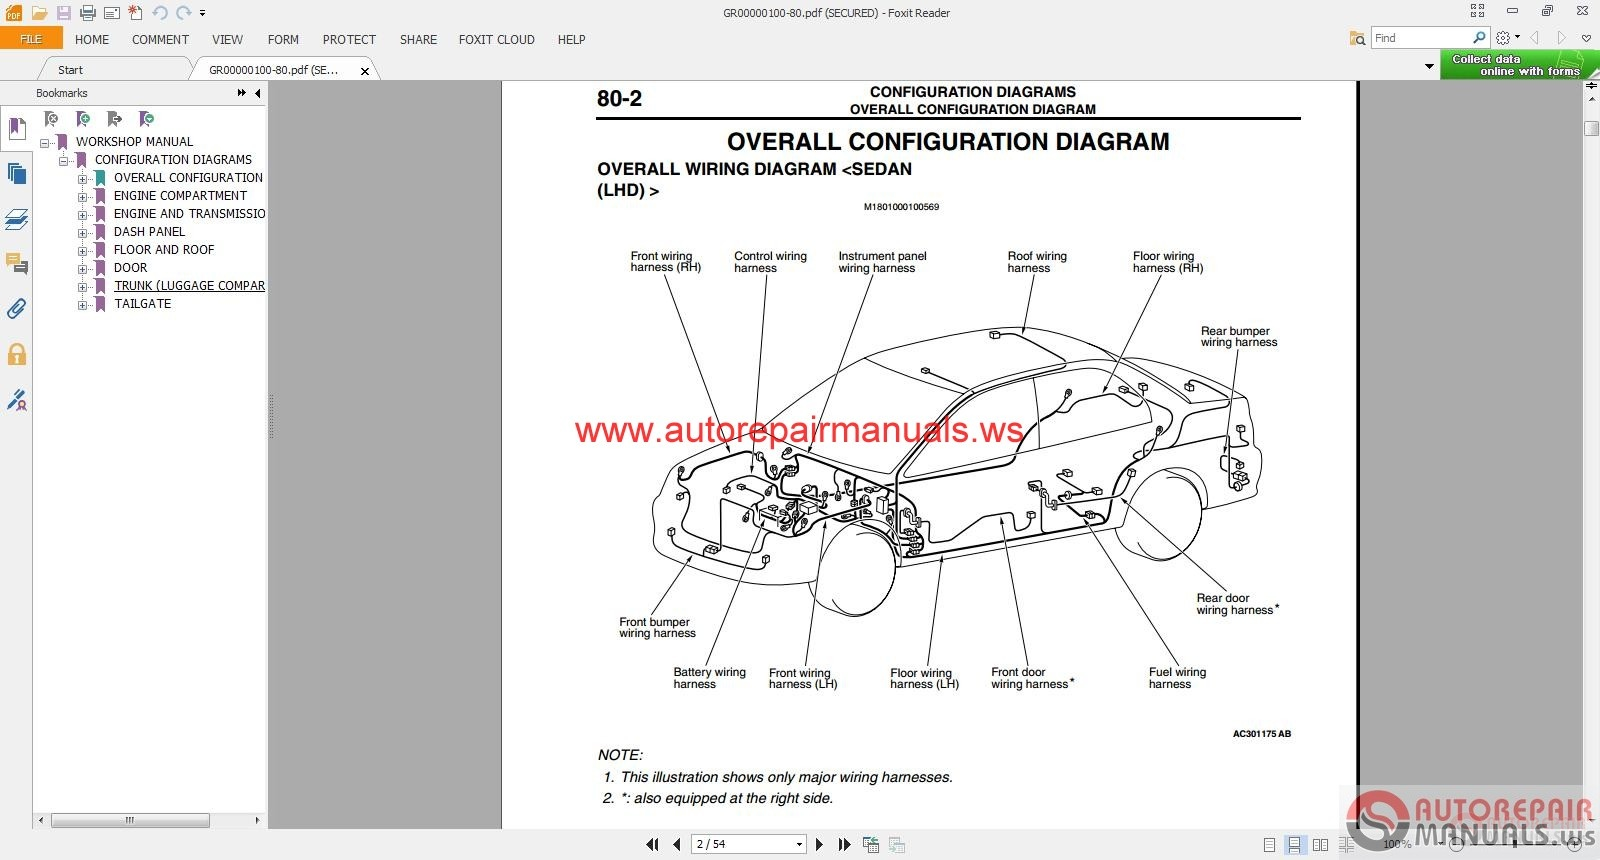 Mitsubishi lancer ix wiring diagrams auto repair